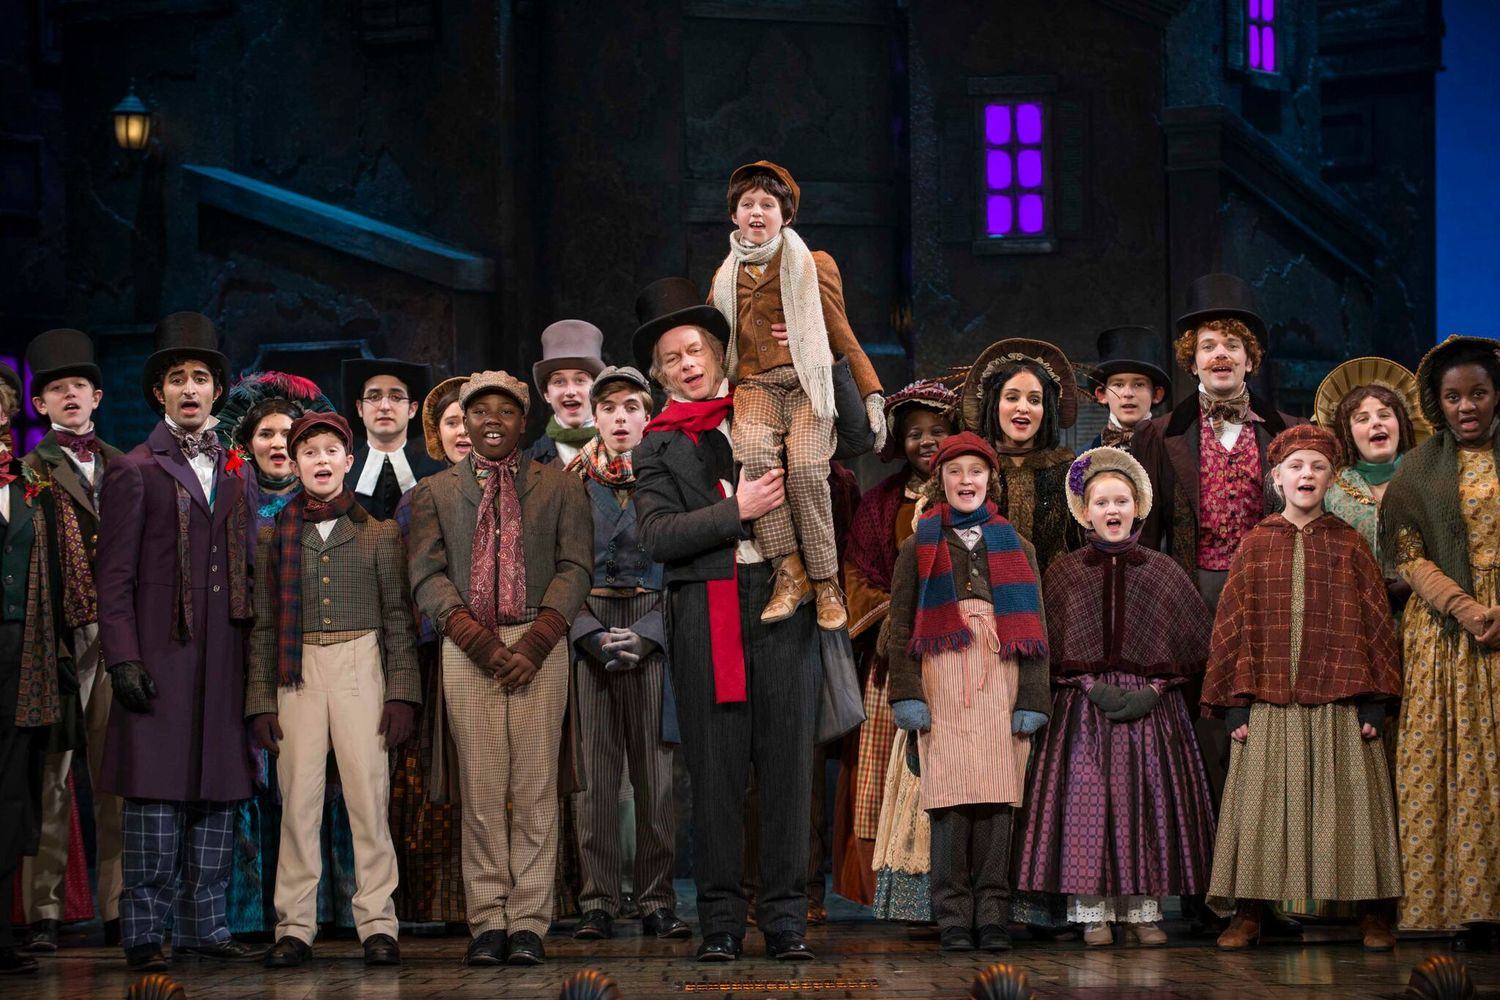 Regional Roundup: Top New Features This Week Around Our BroadwayWorld 12/8 - Les Mis, Newsies, School of Rock, and More!